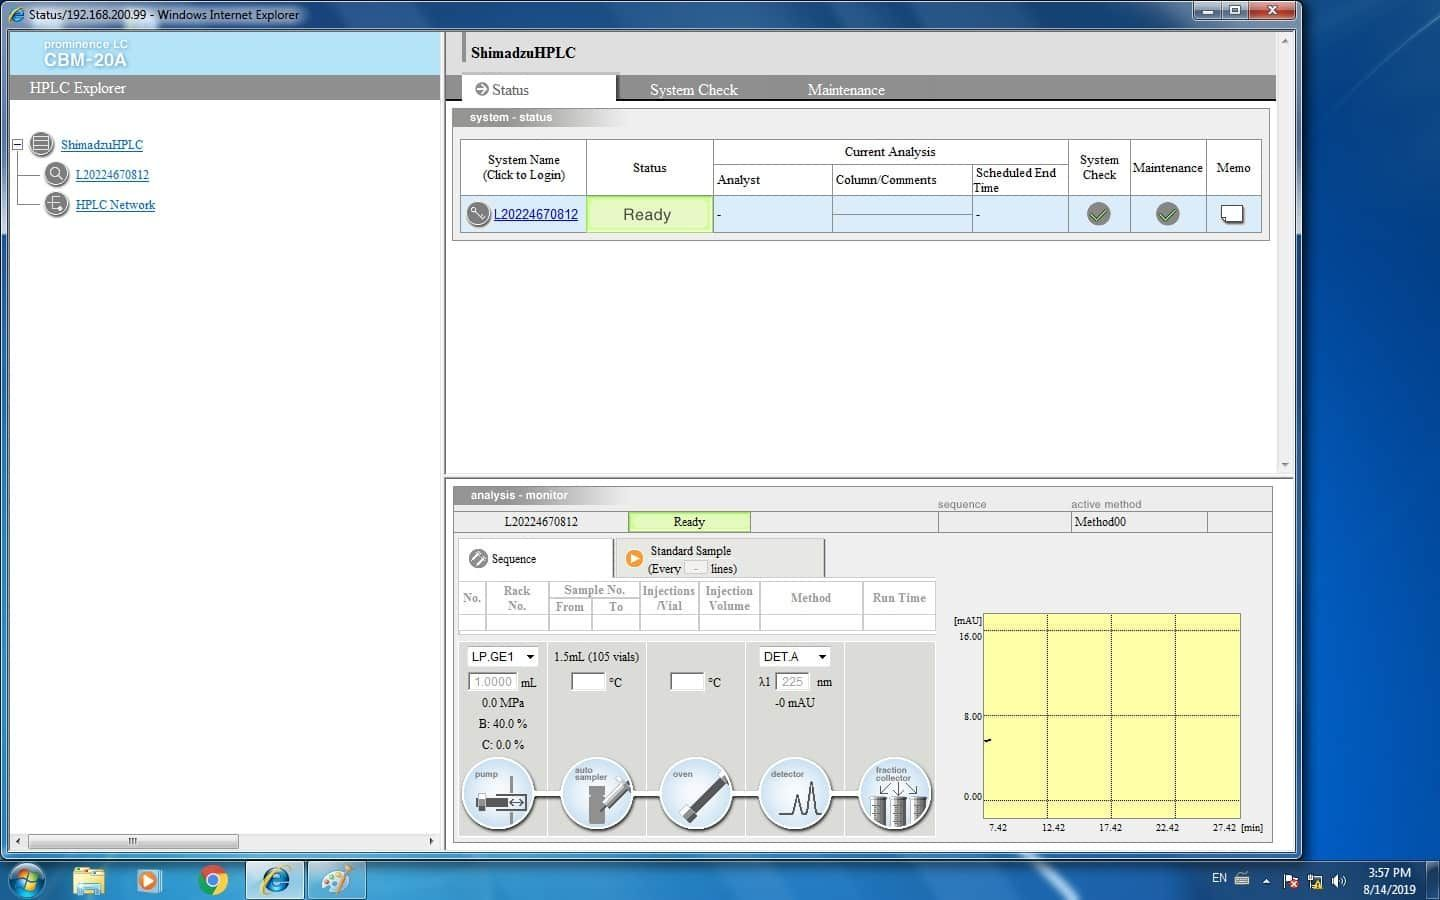 Shimadzu Prominence 20 UHPLC System Including Software and Spare Parts